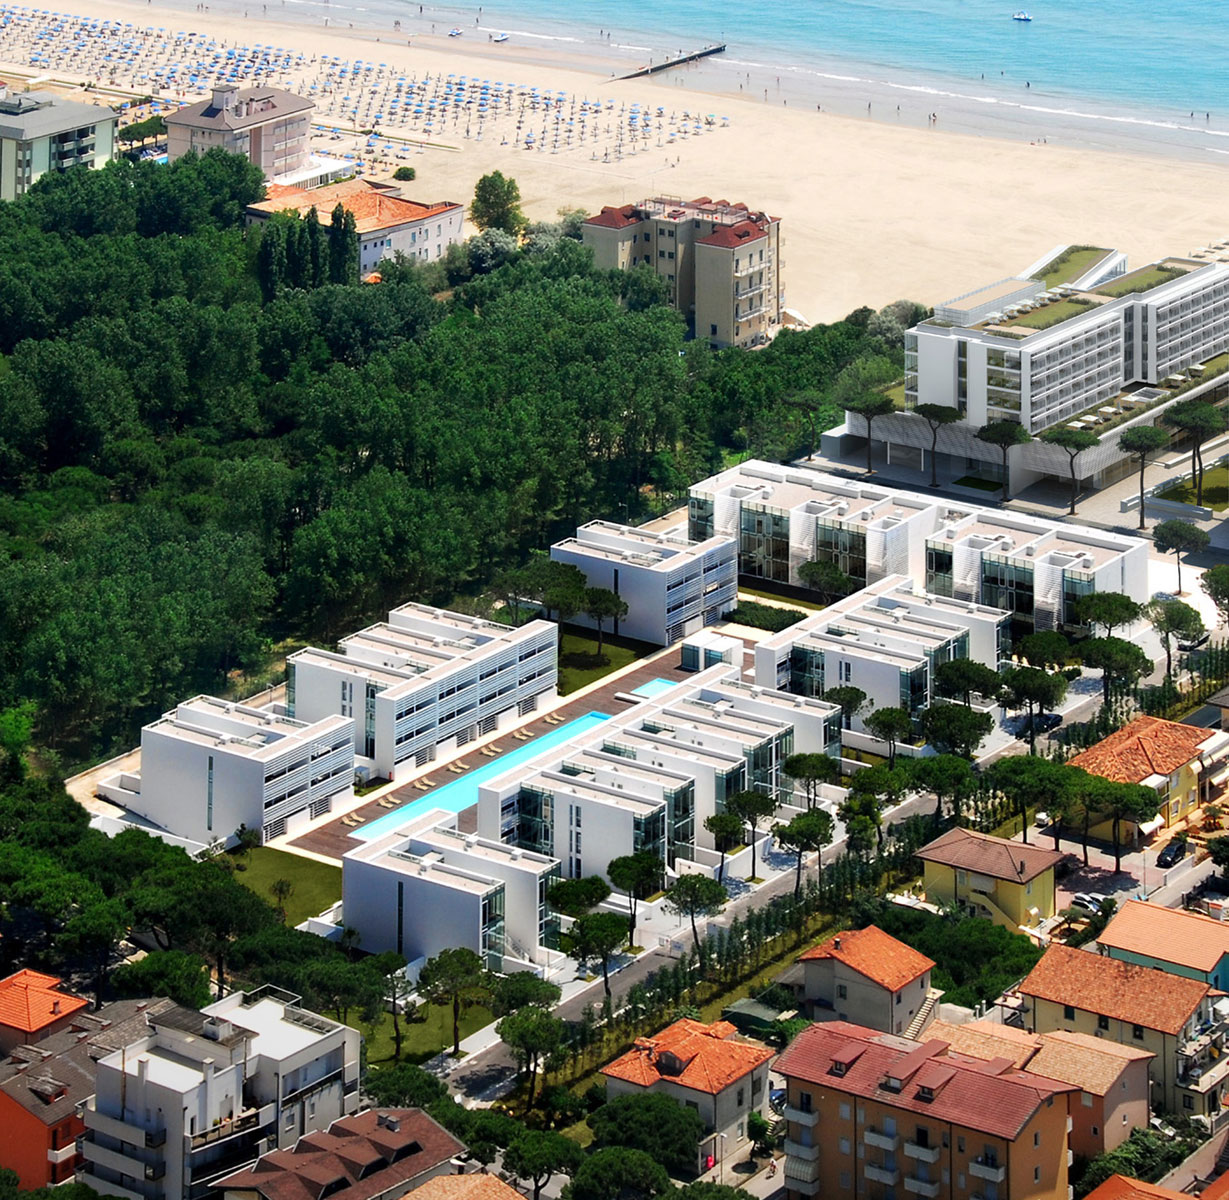 Jesolo Immobiliare By Richard Meier Present The Pool Houses In Jlv